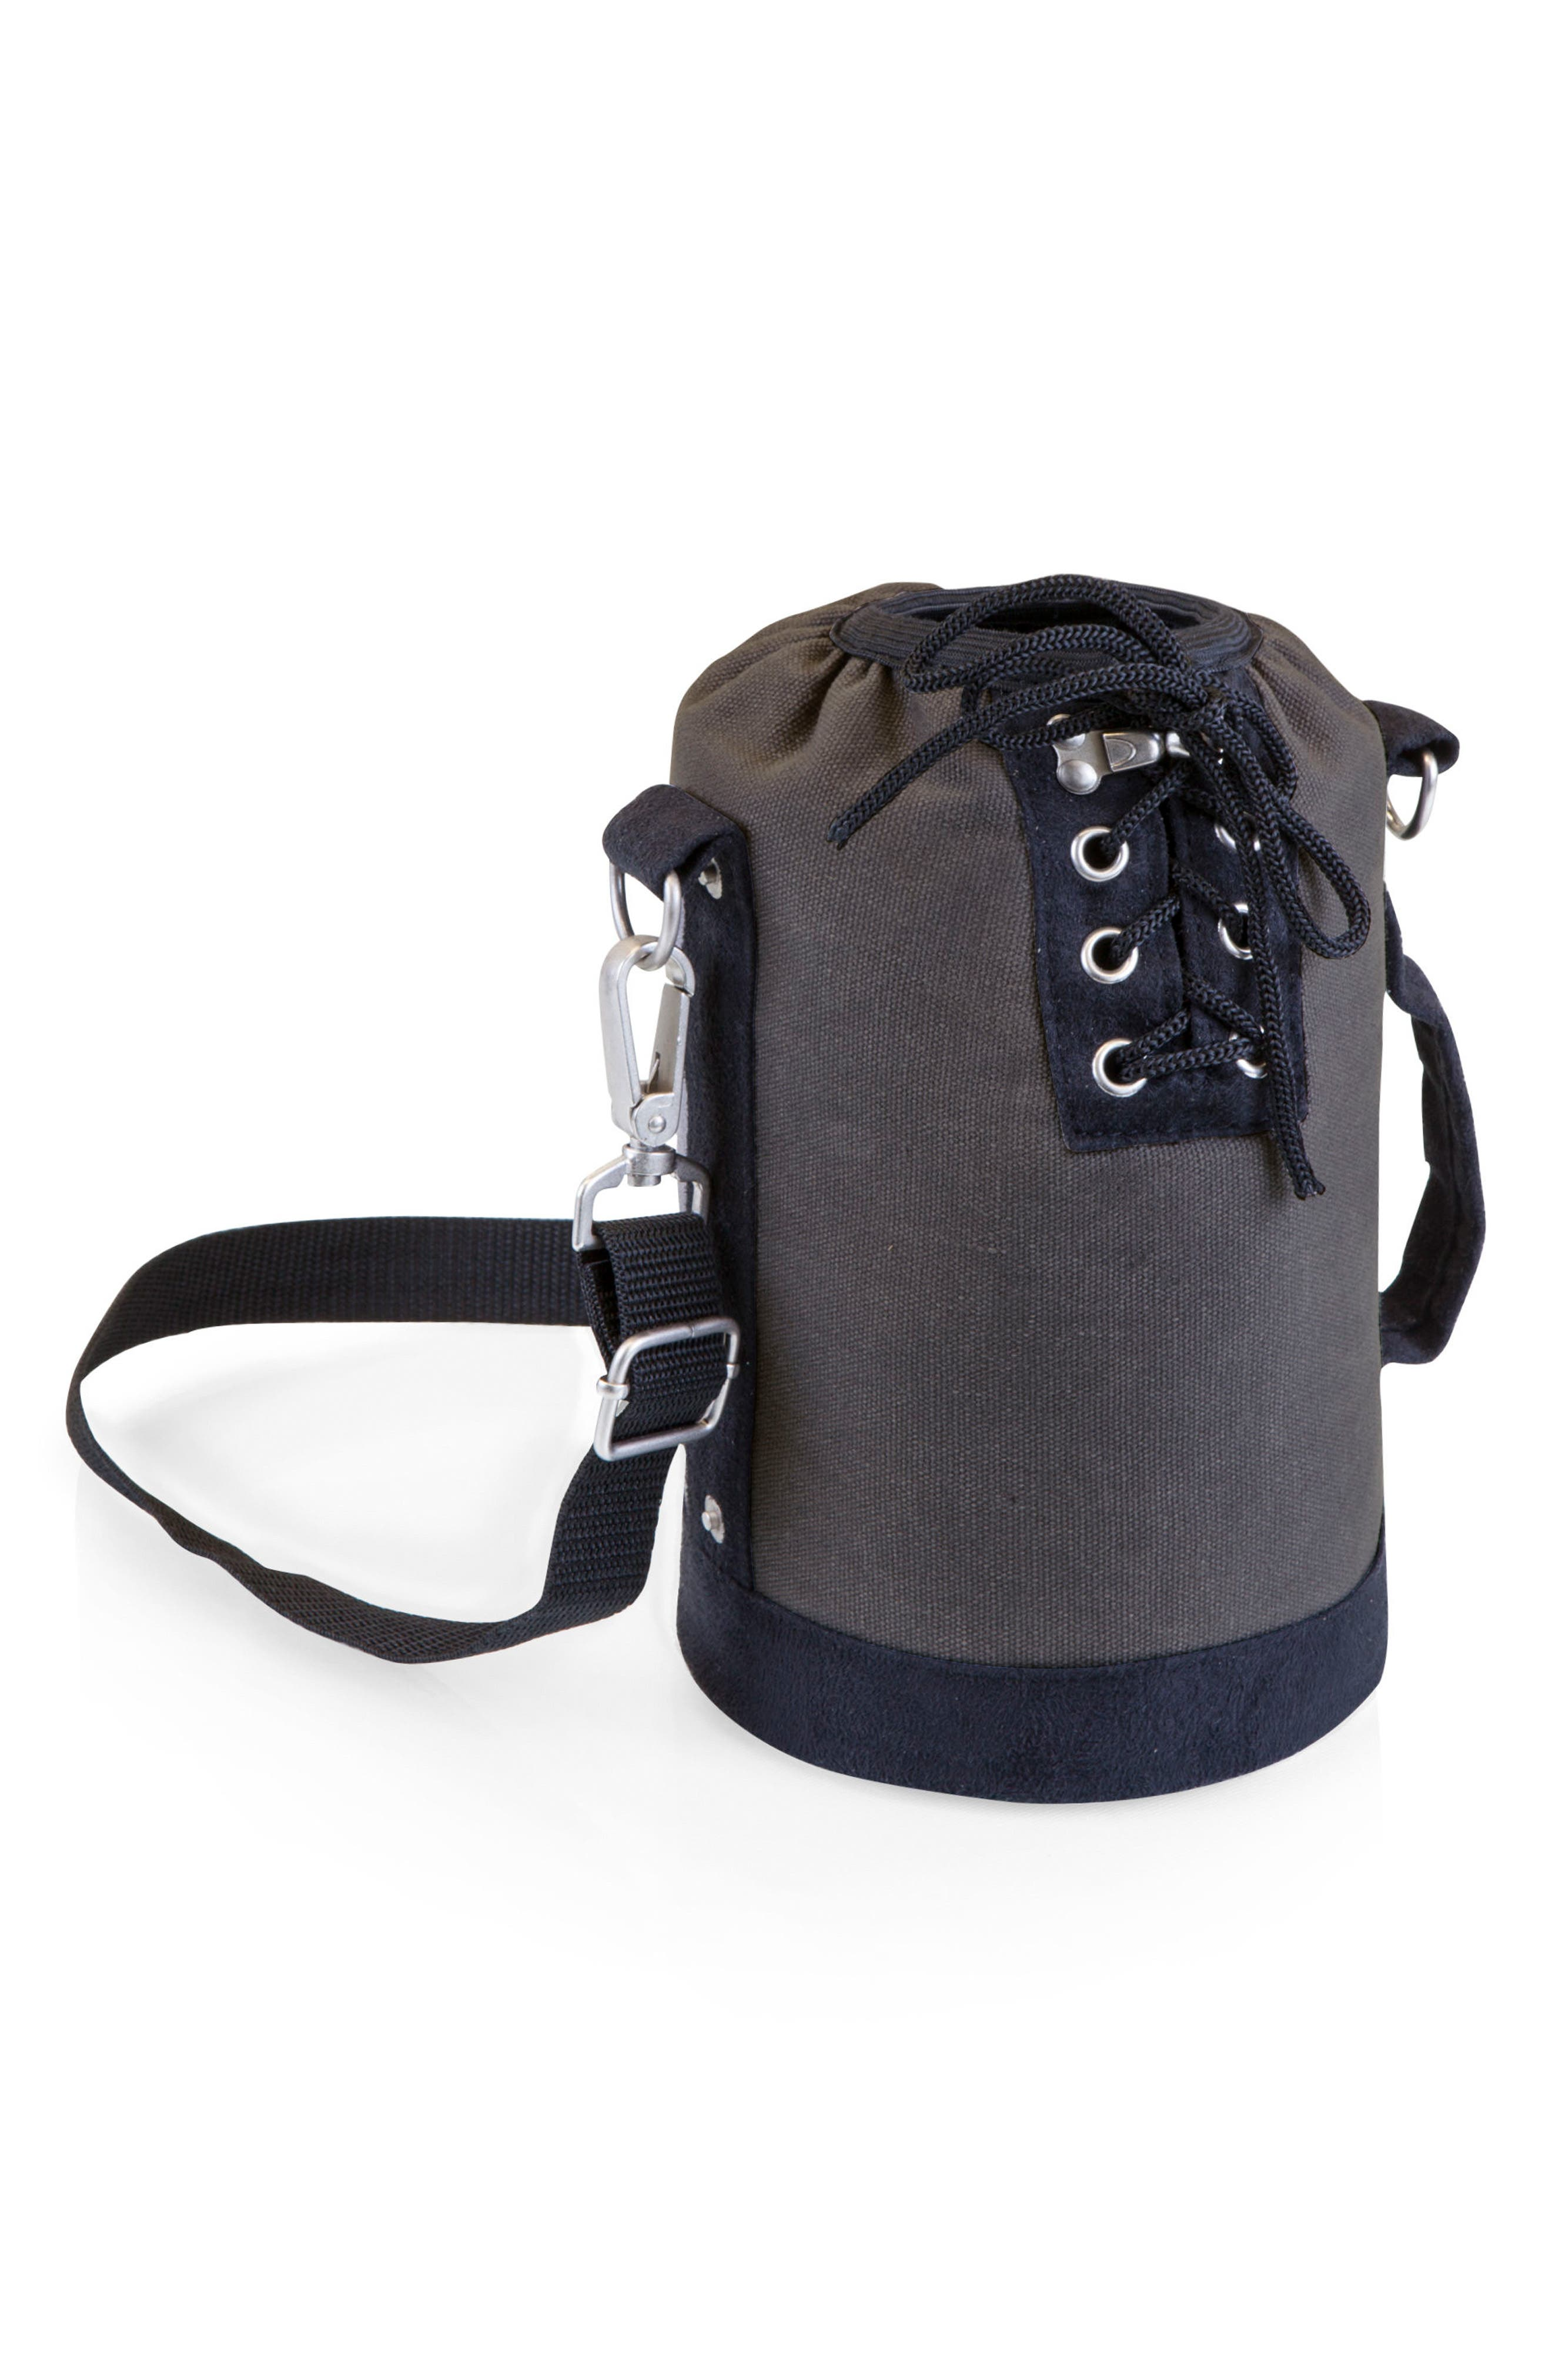 Main Image - Picnic Time Insulated Growler Tote